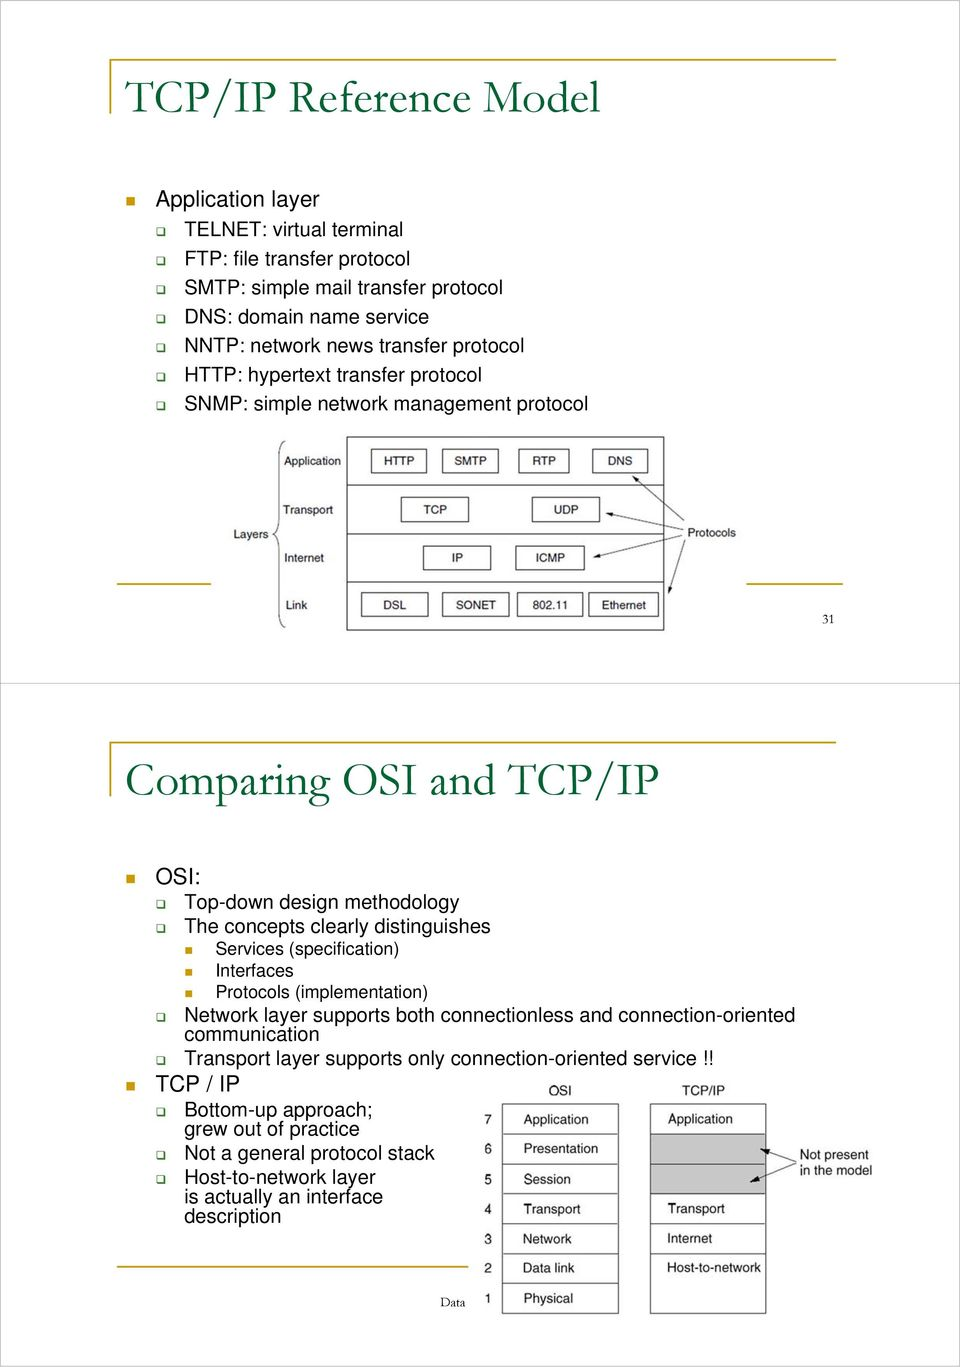 distinguishes Services (specification) Interfaces Protocols (implementation) Network layer supports both connectionless and connection-oriented communication Transport layer supports